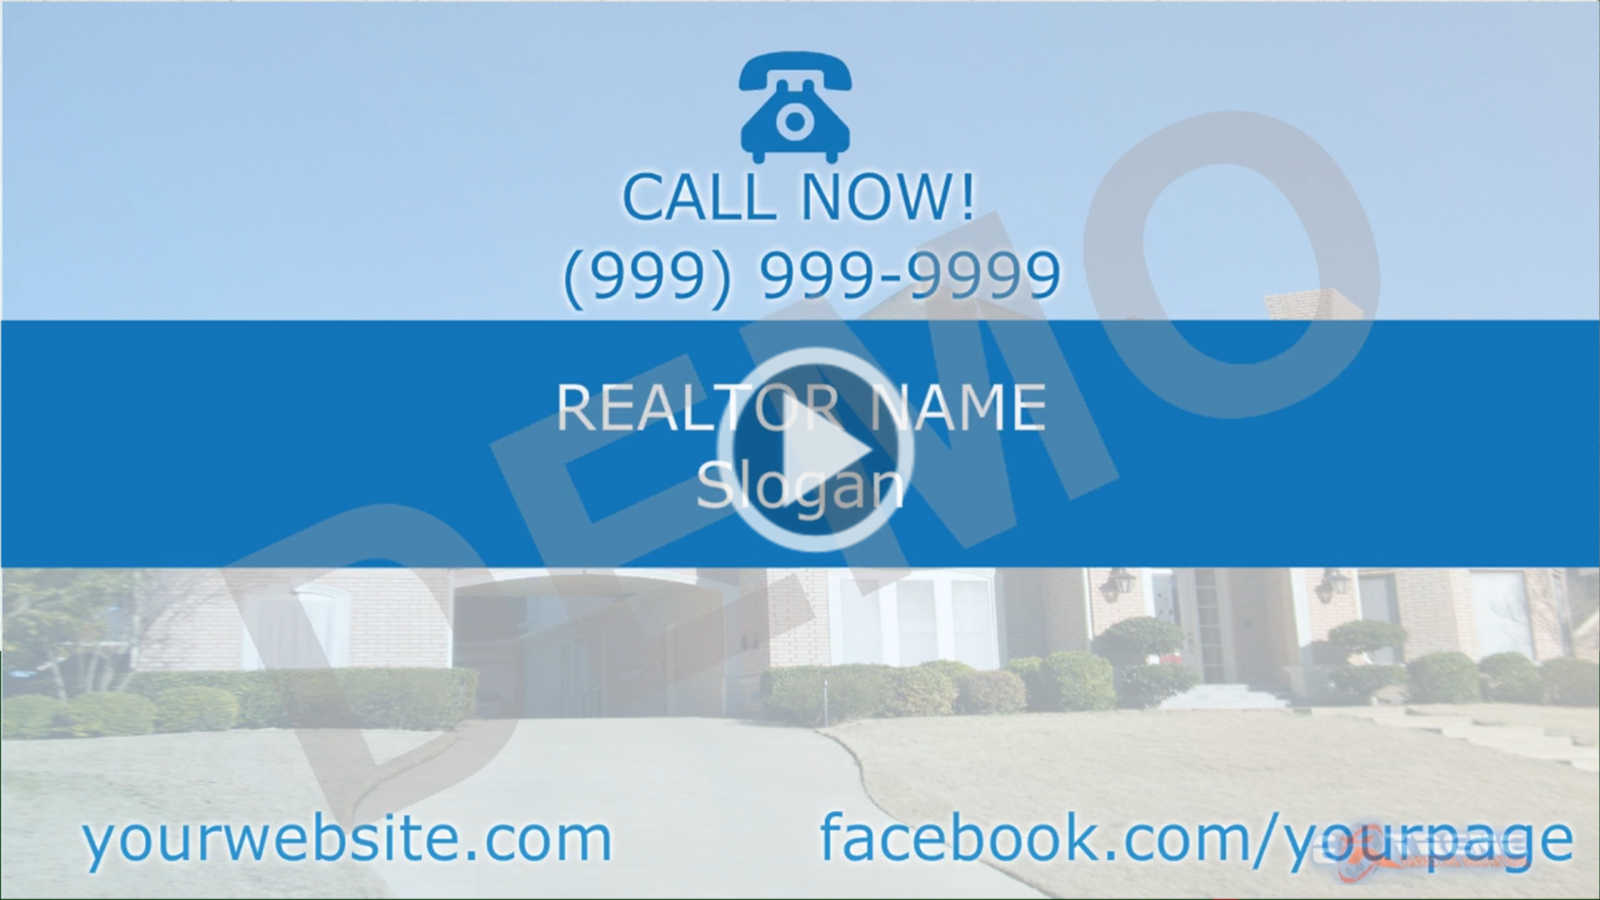 REAL ESTATE SALES VIDEOS